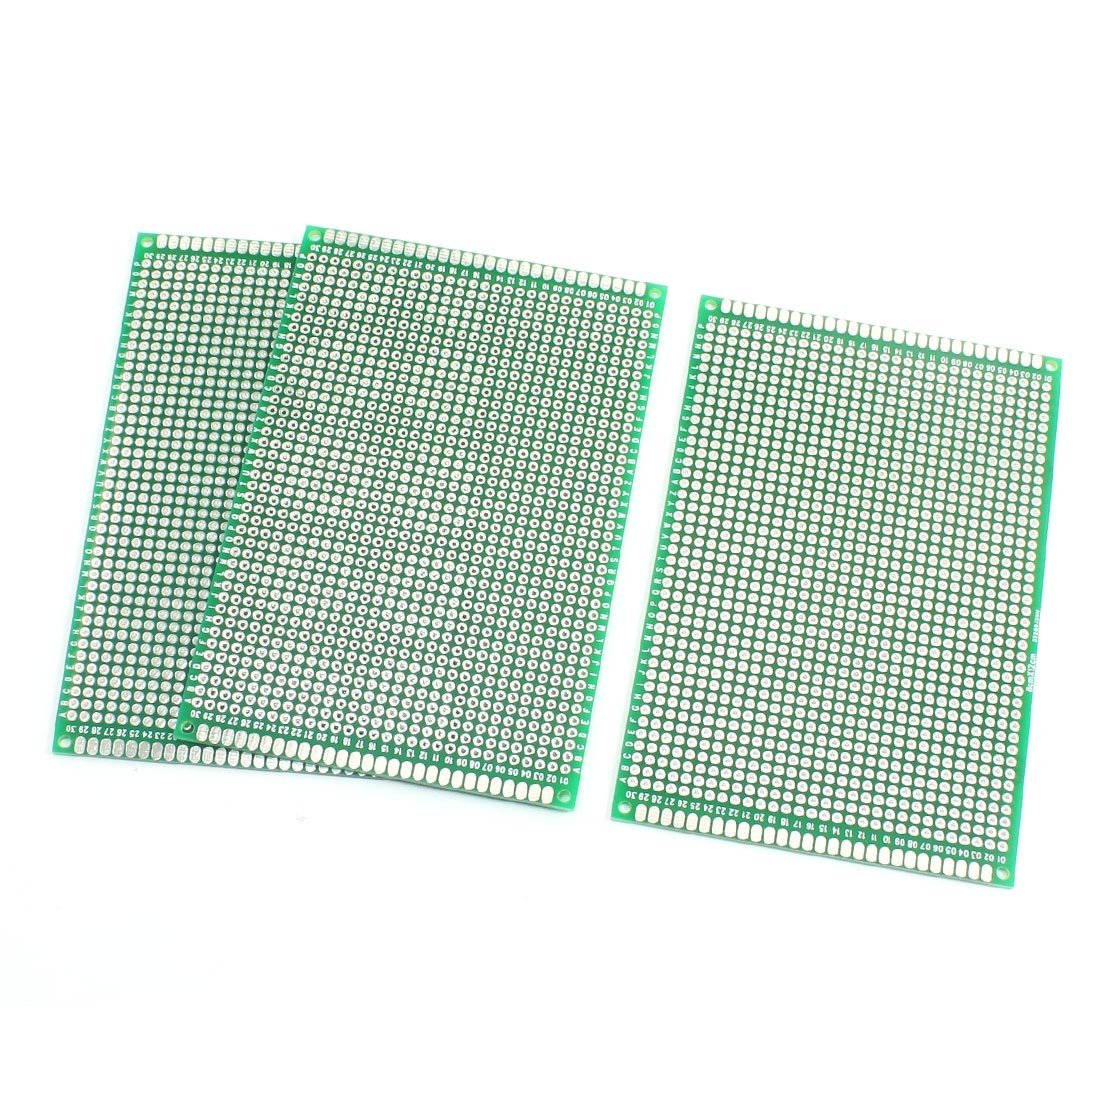 3Pcs Double Side Protoboard Prototype Printed Circuit Board 8cm x 12cm